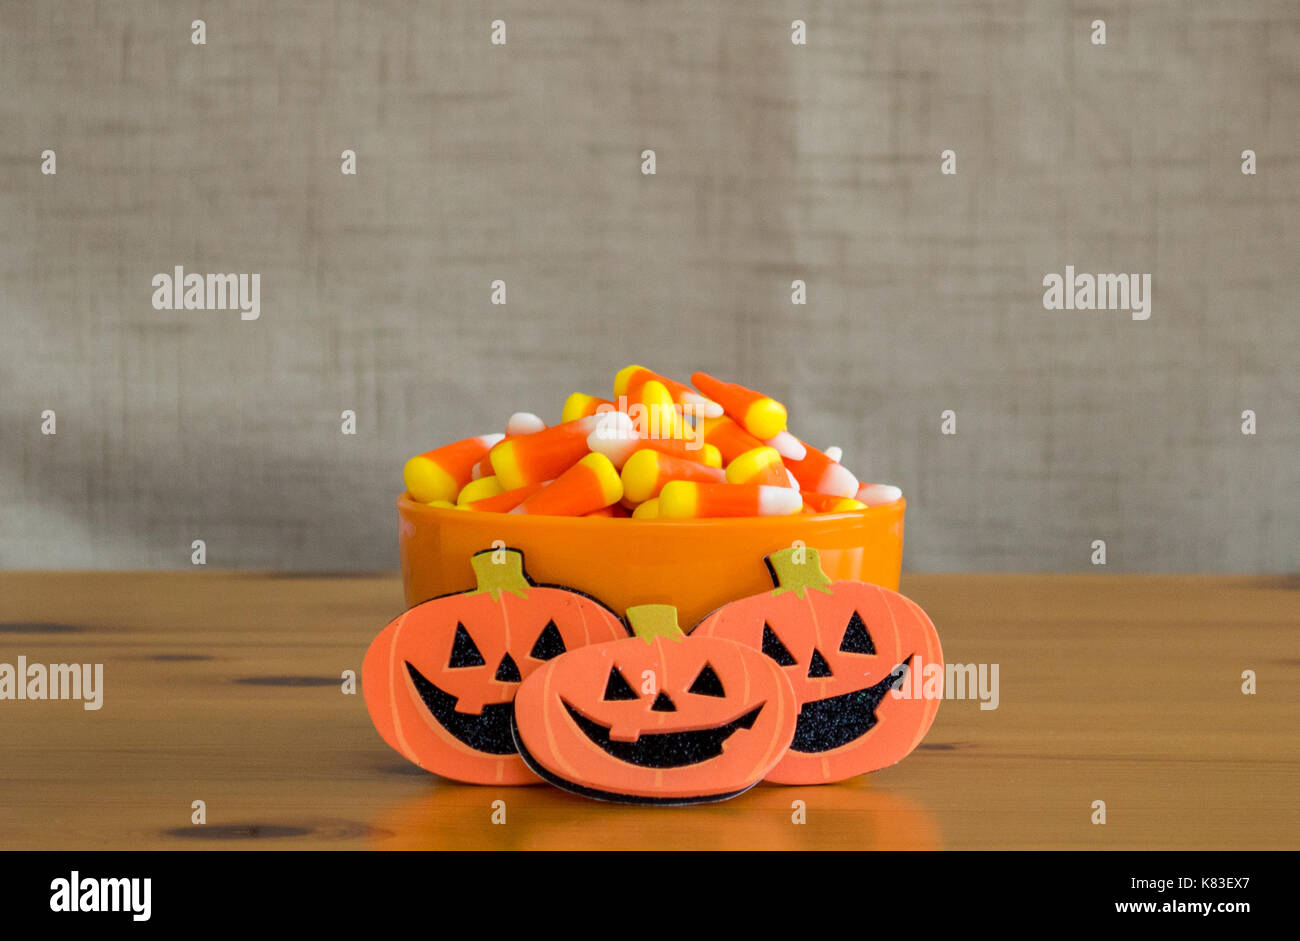 candy corn in an orange bowl with mini jack-o-lantern cartoons on a wooden table - Stock Image